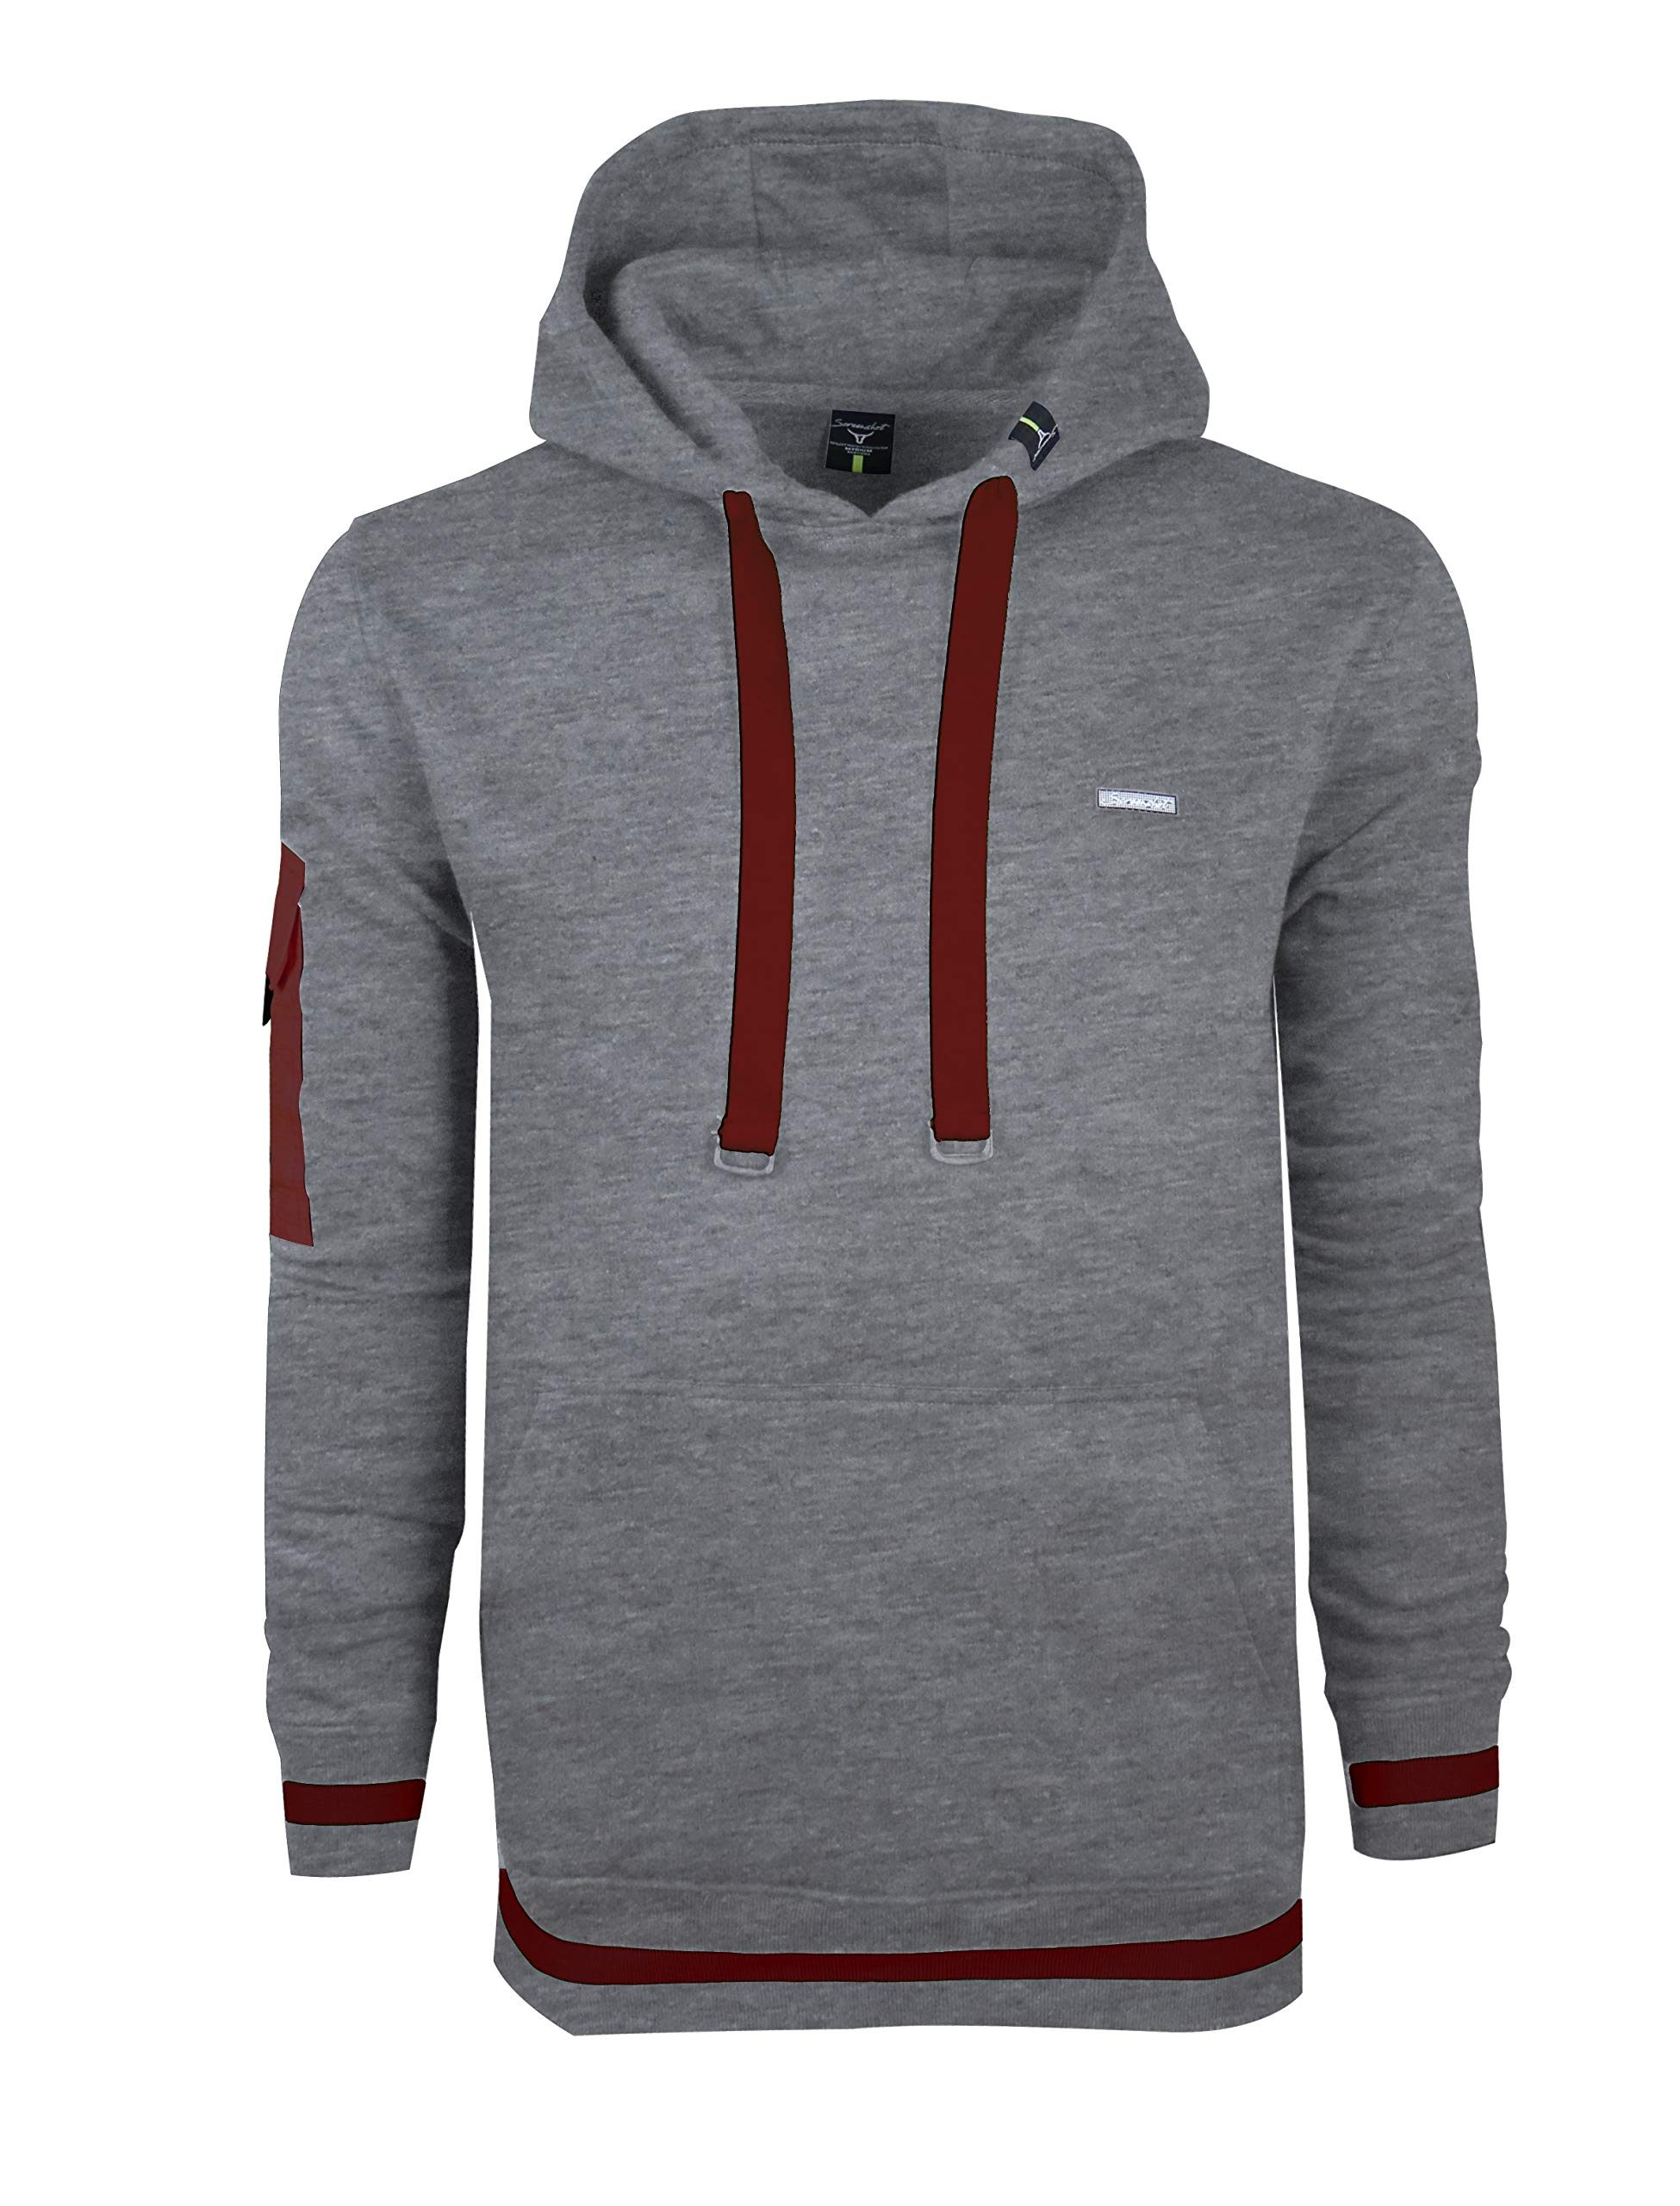 SCREENSHOT SPORTS-F11960 Mens Premium Athletic Pullover Fashion Hoodie - Running Fitness Jogger Workout Active Sweatshirt-H.Grey-2XLarge by SCREENSHOT